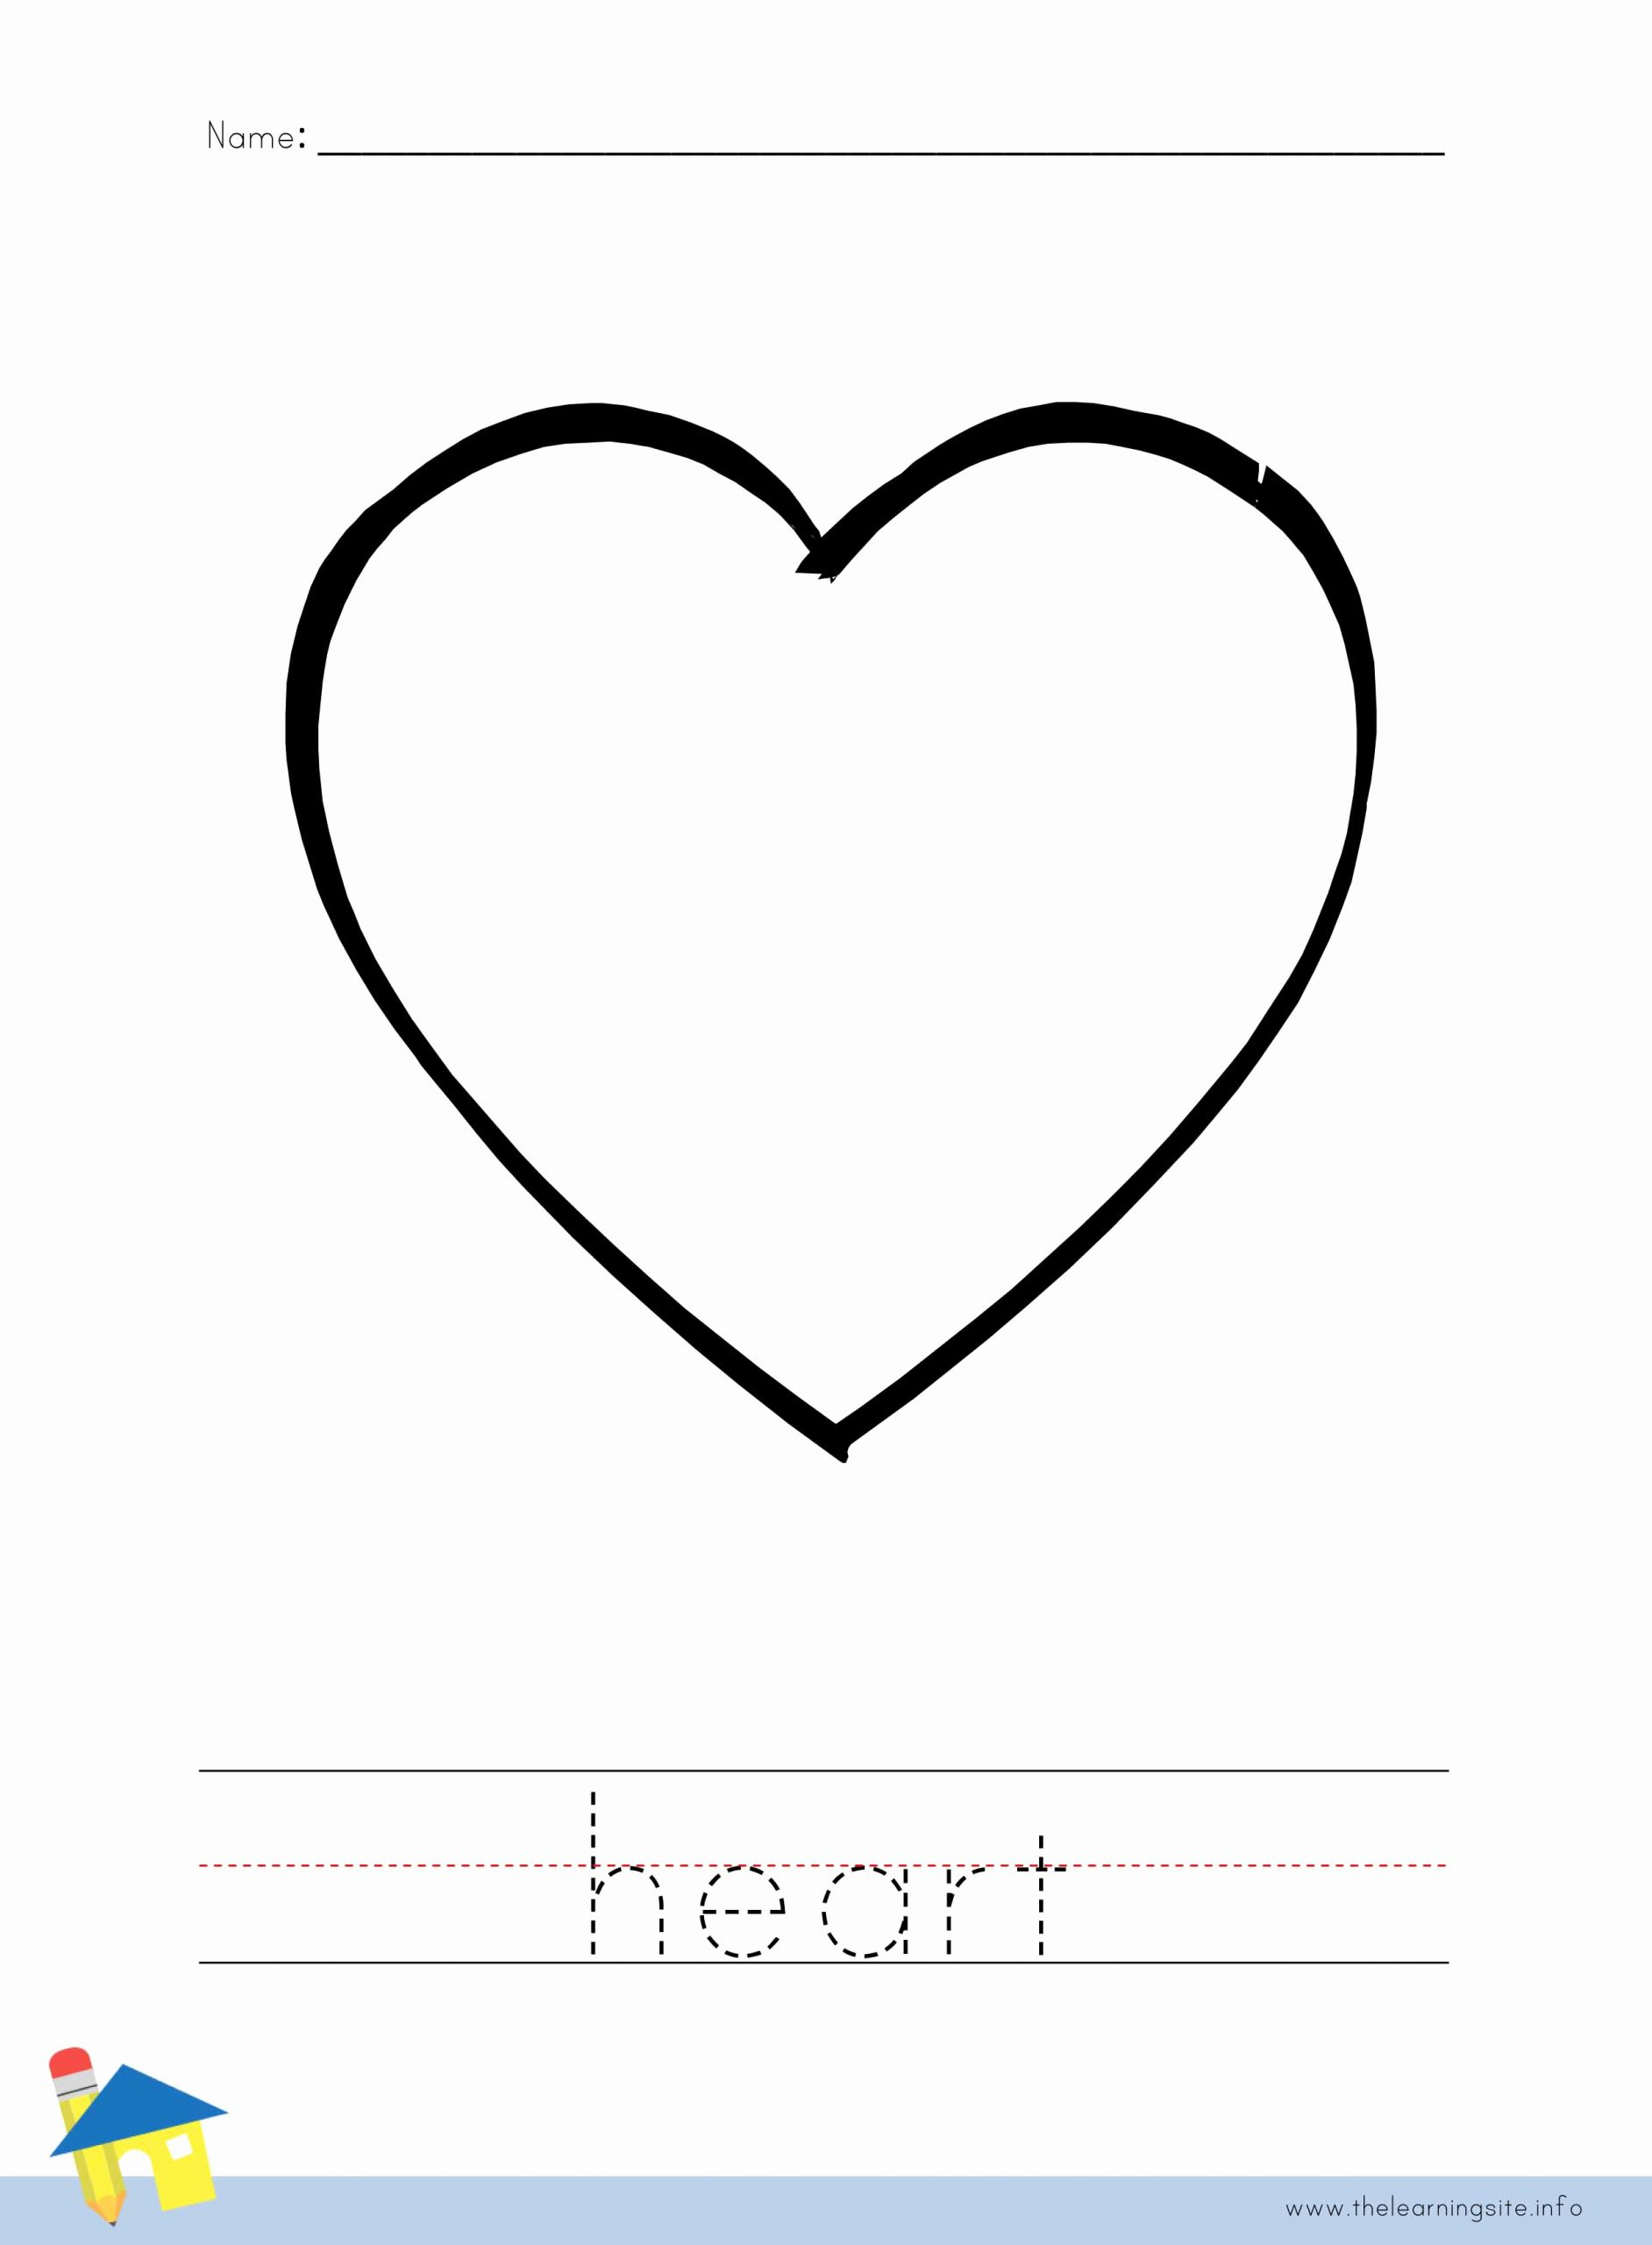 Heart Coloring Worksheet Awesome the Learning Site